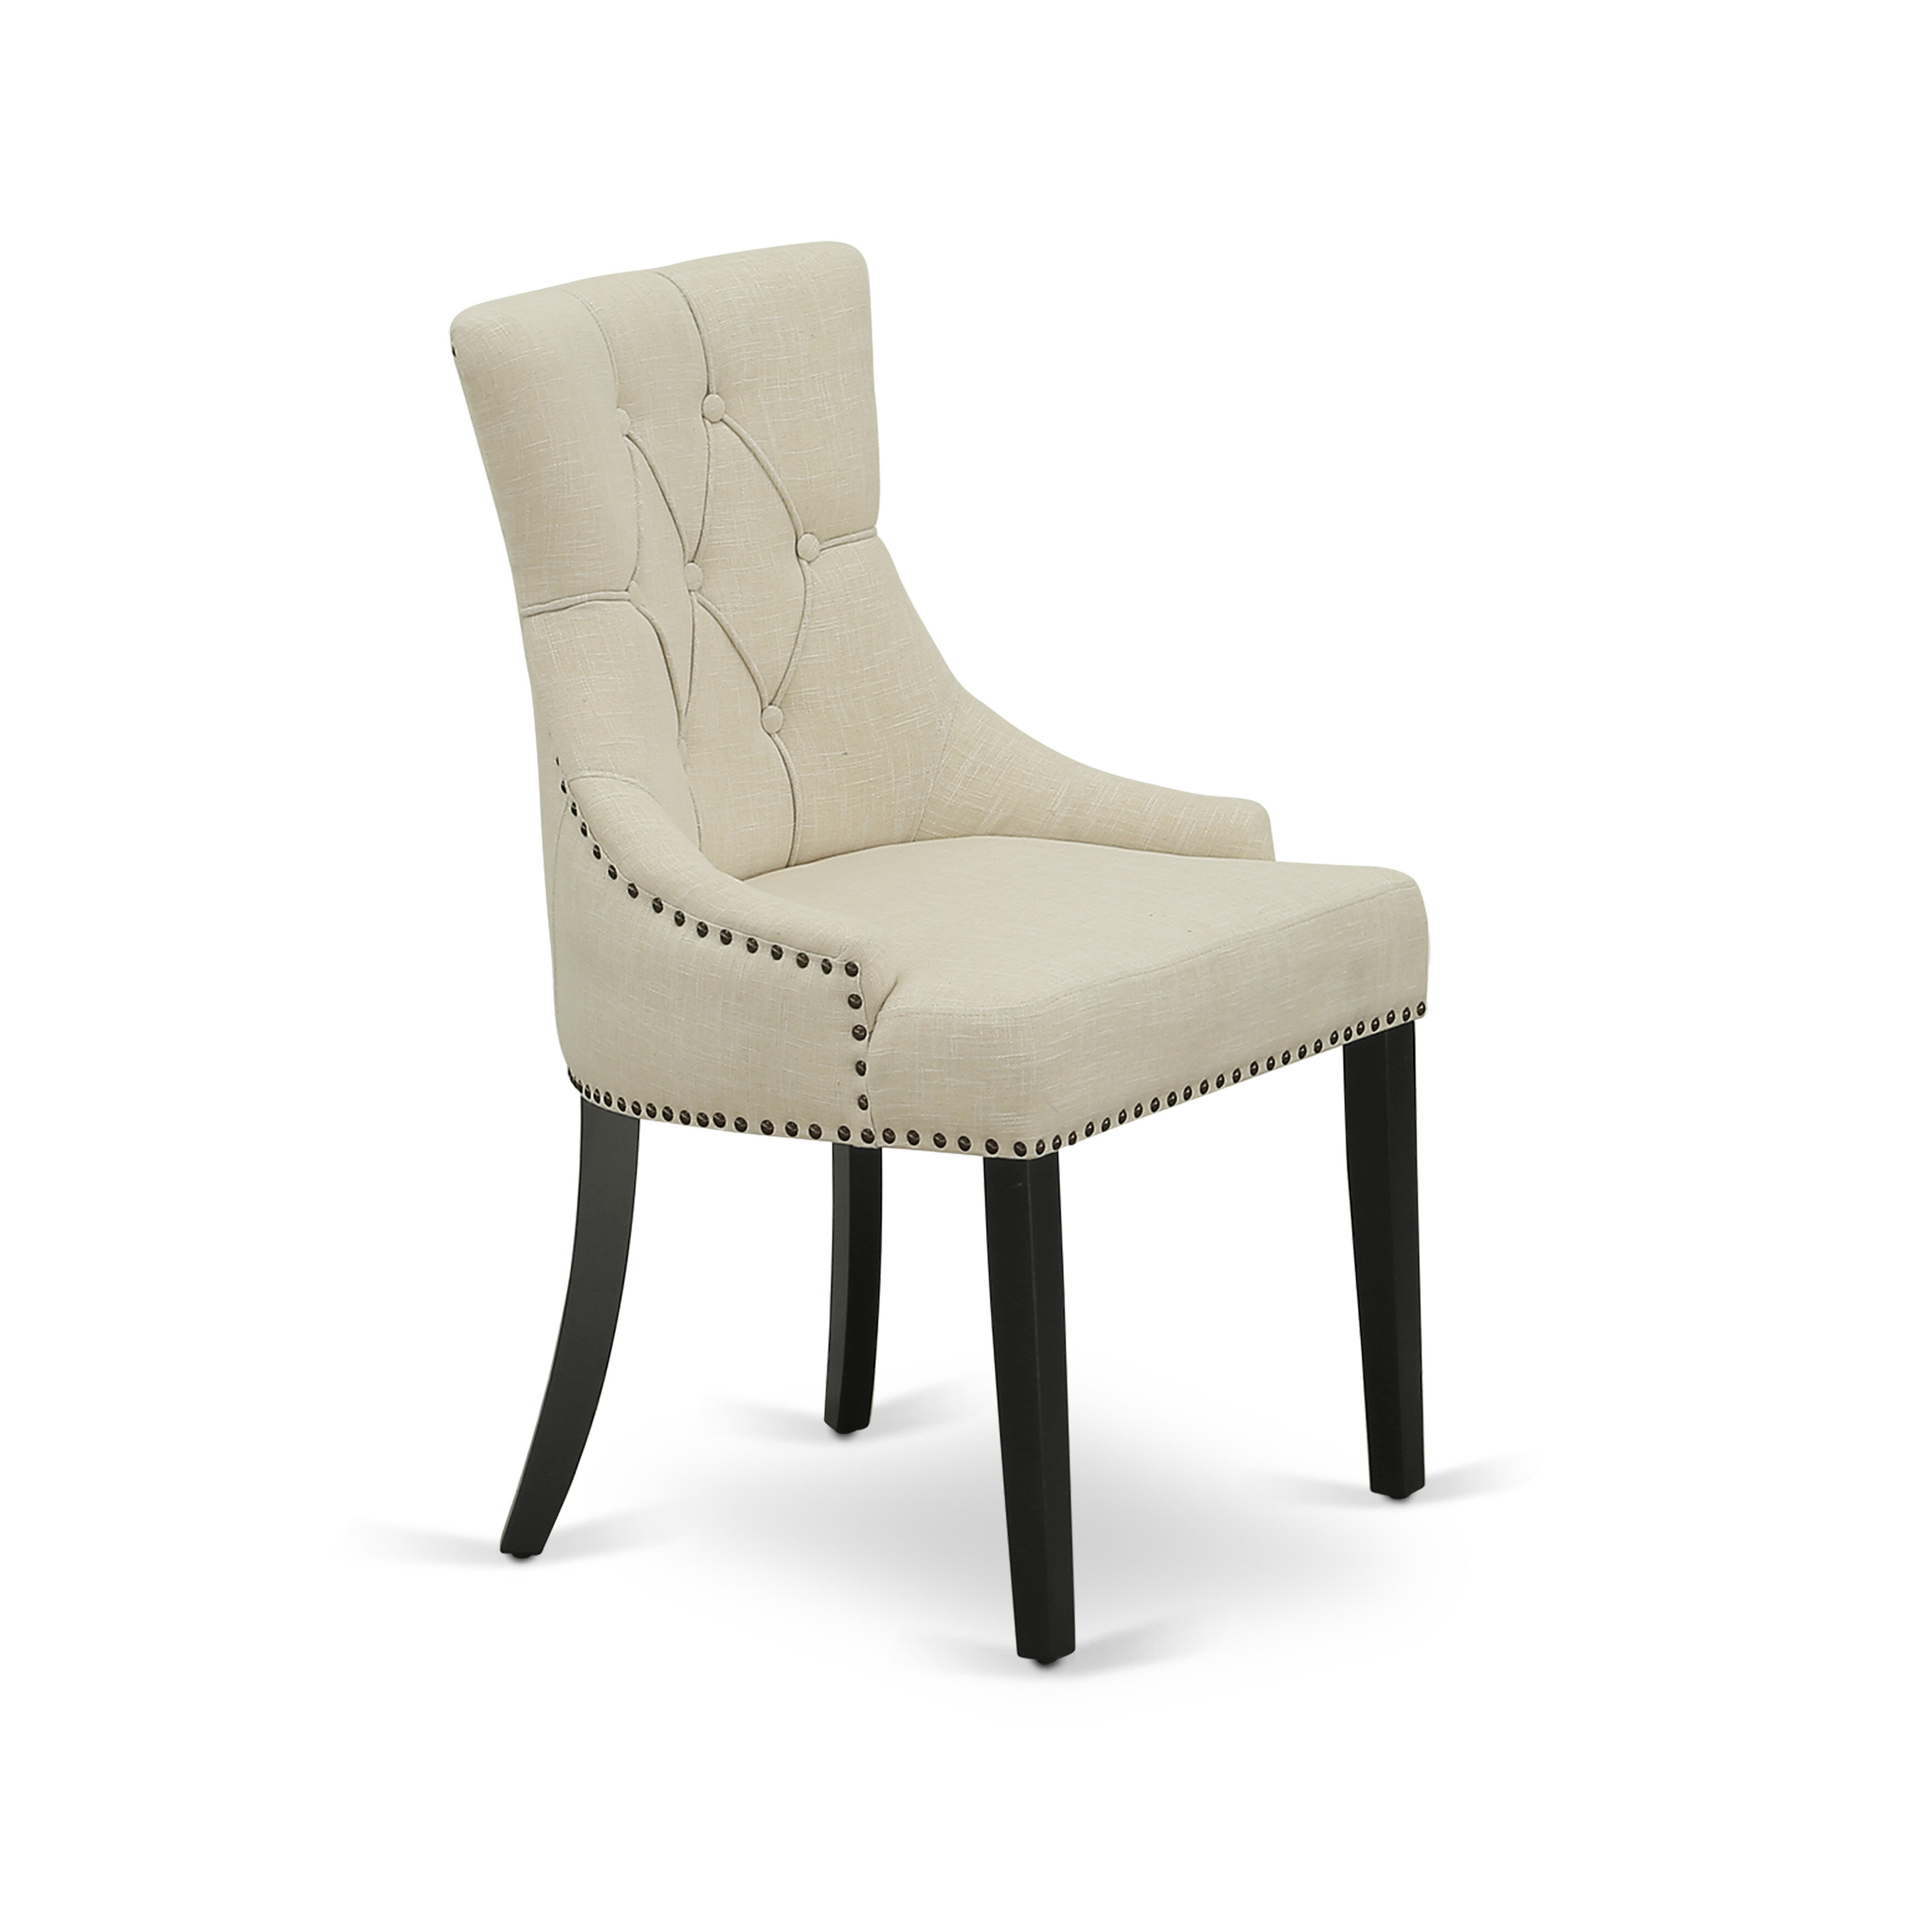 Charlton Home Schlemmer Upholstered Dining Chair Reviews Wayfair